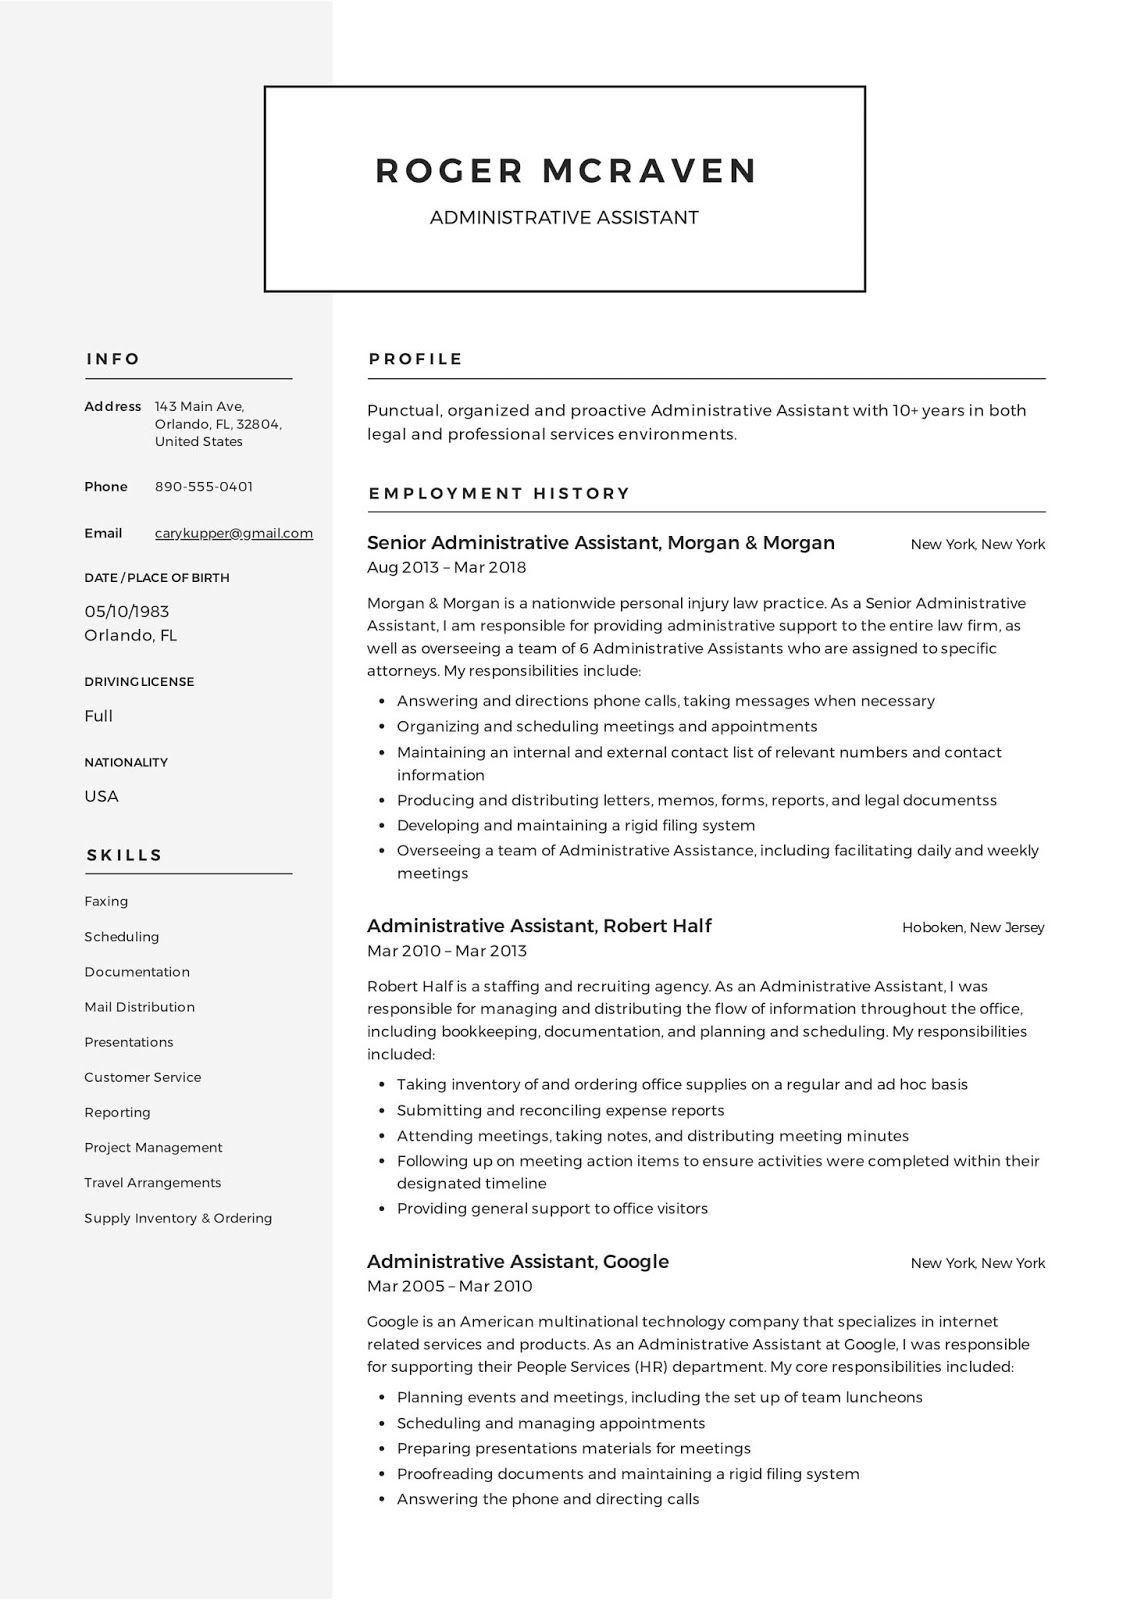 administrative resume template free microsoft word assistant event planner office manager Resume Administrative Assistant Resume Examples 2020